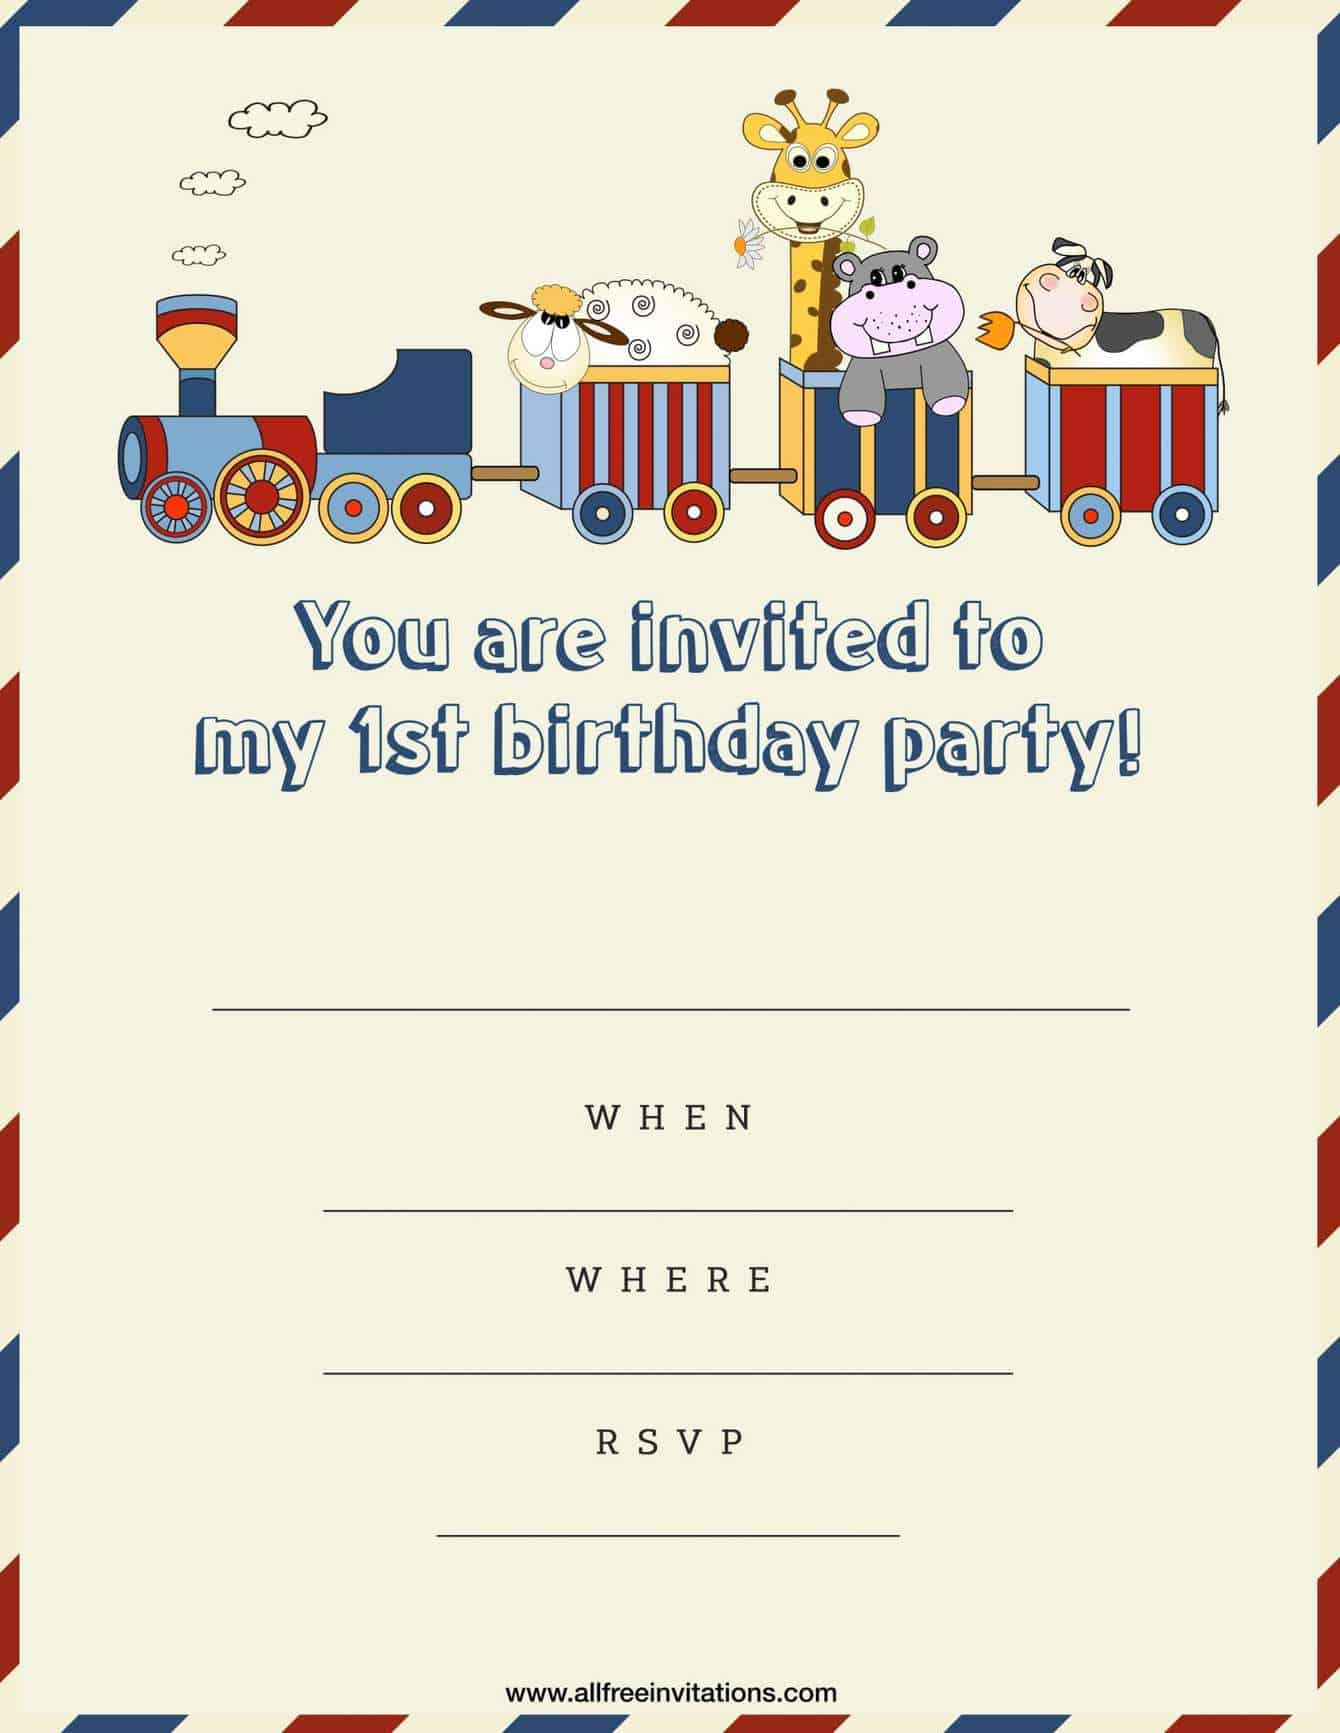 1st Birthday Party Invitation Brown Train